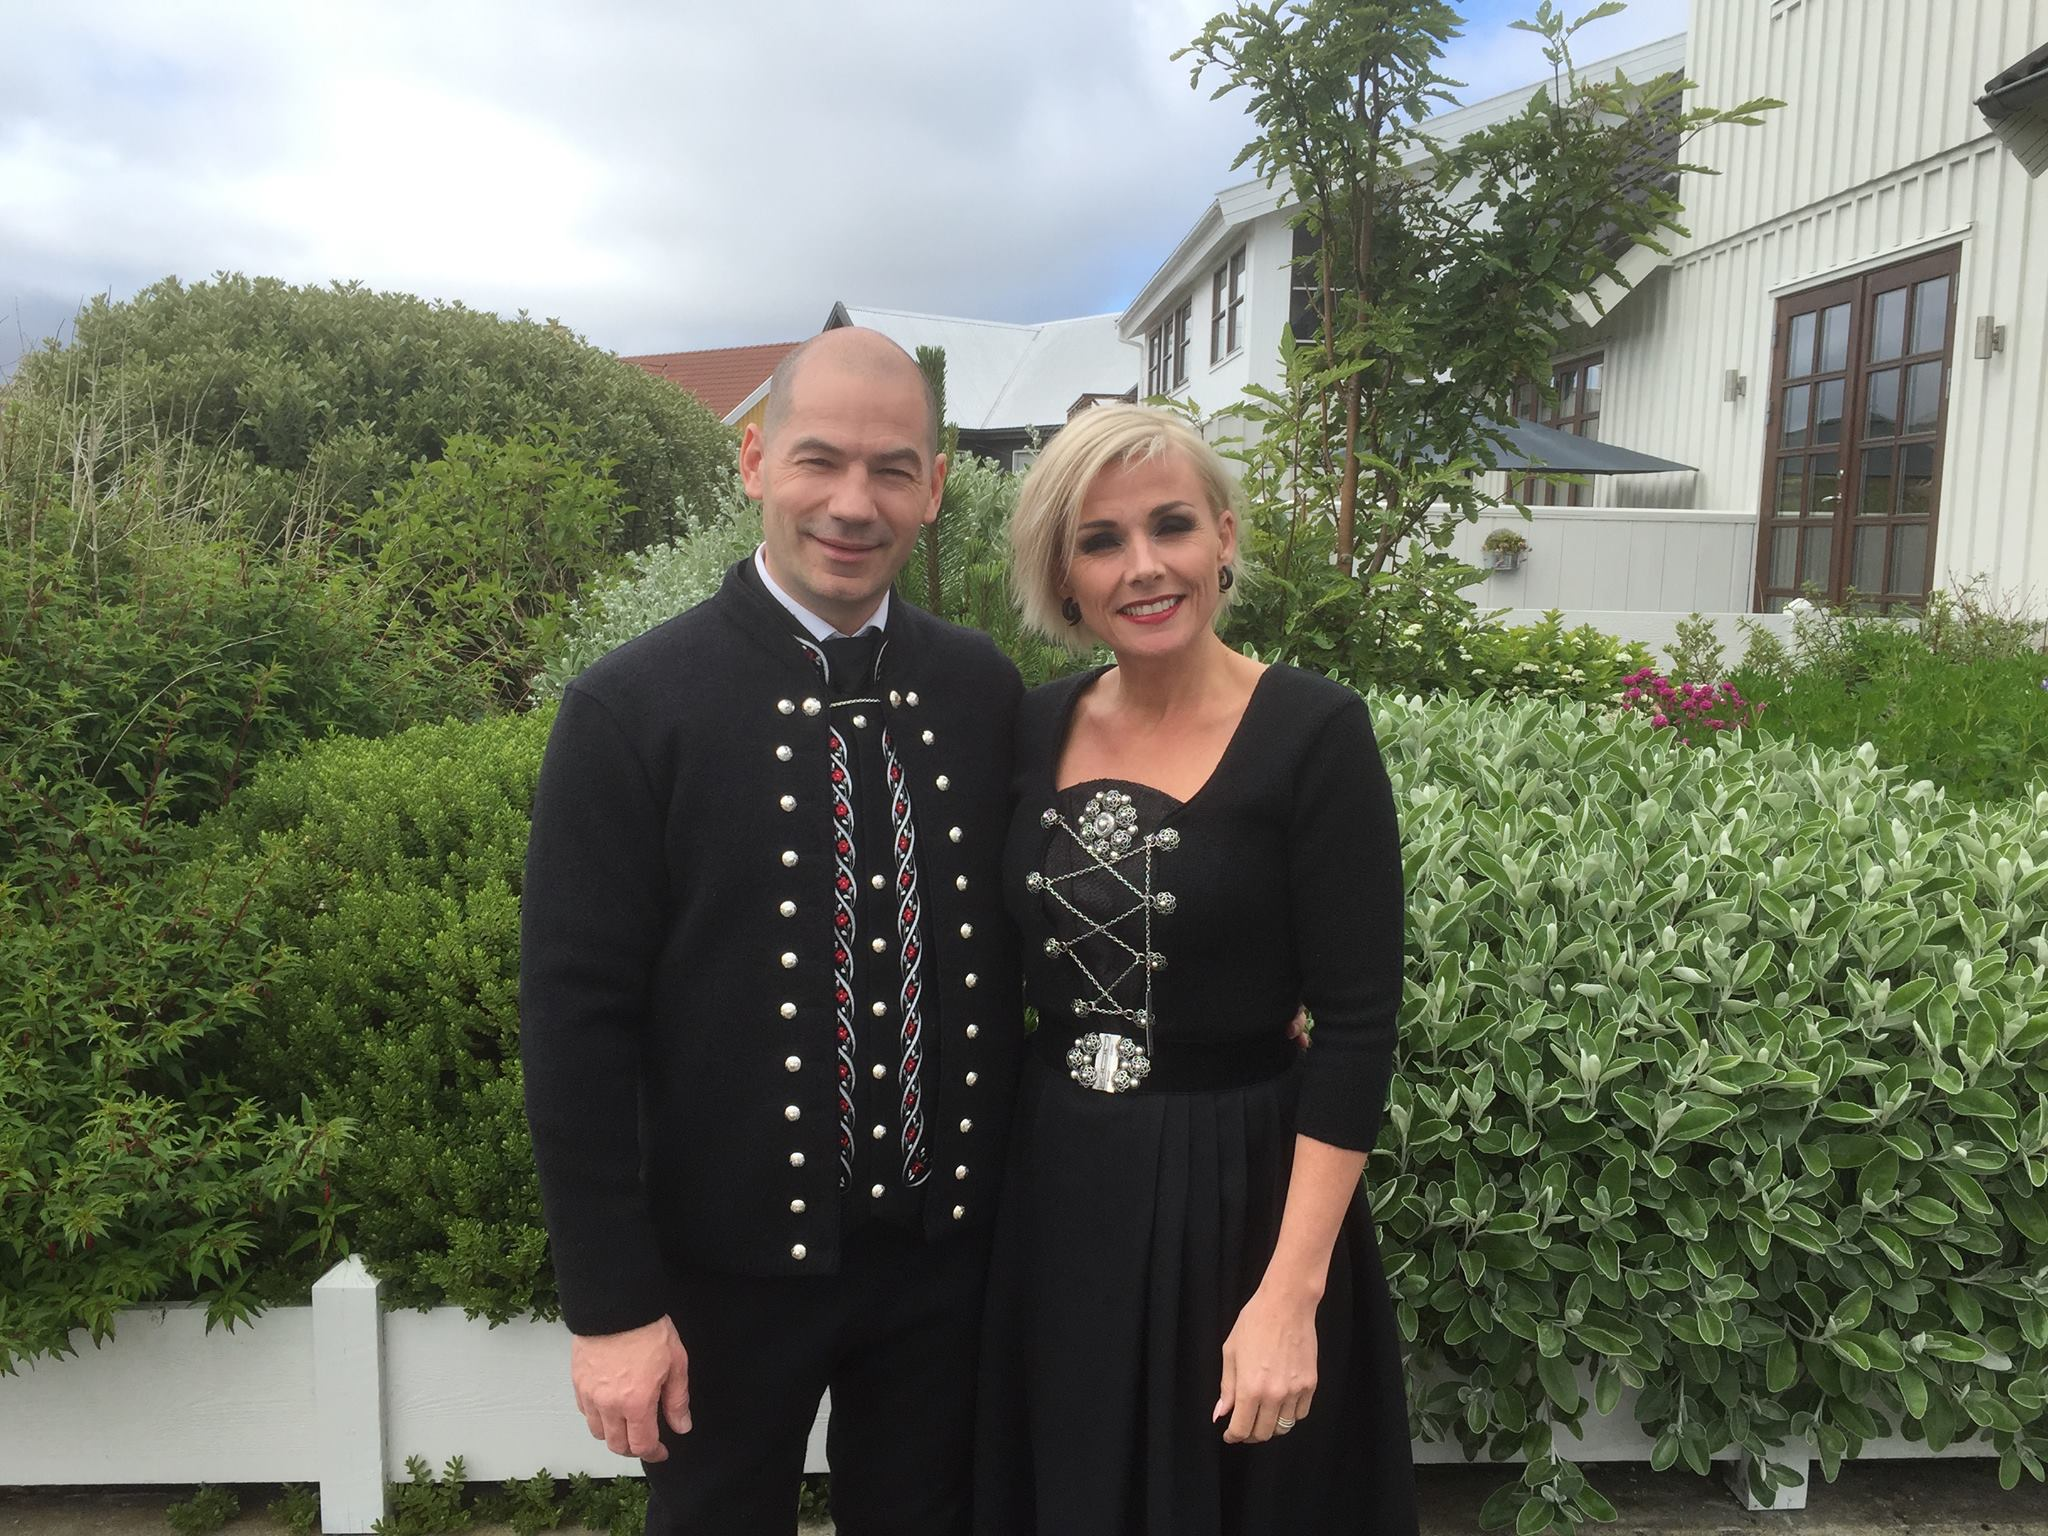 National Faroese clothes